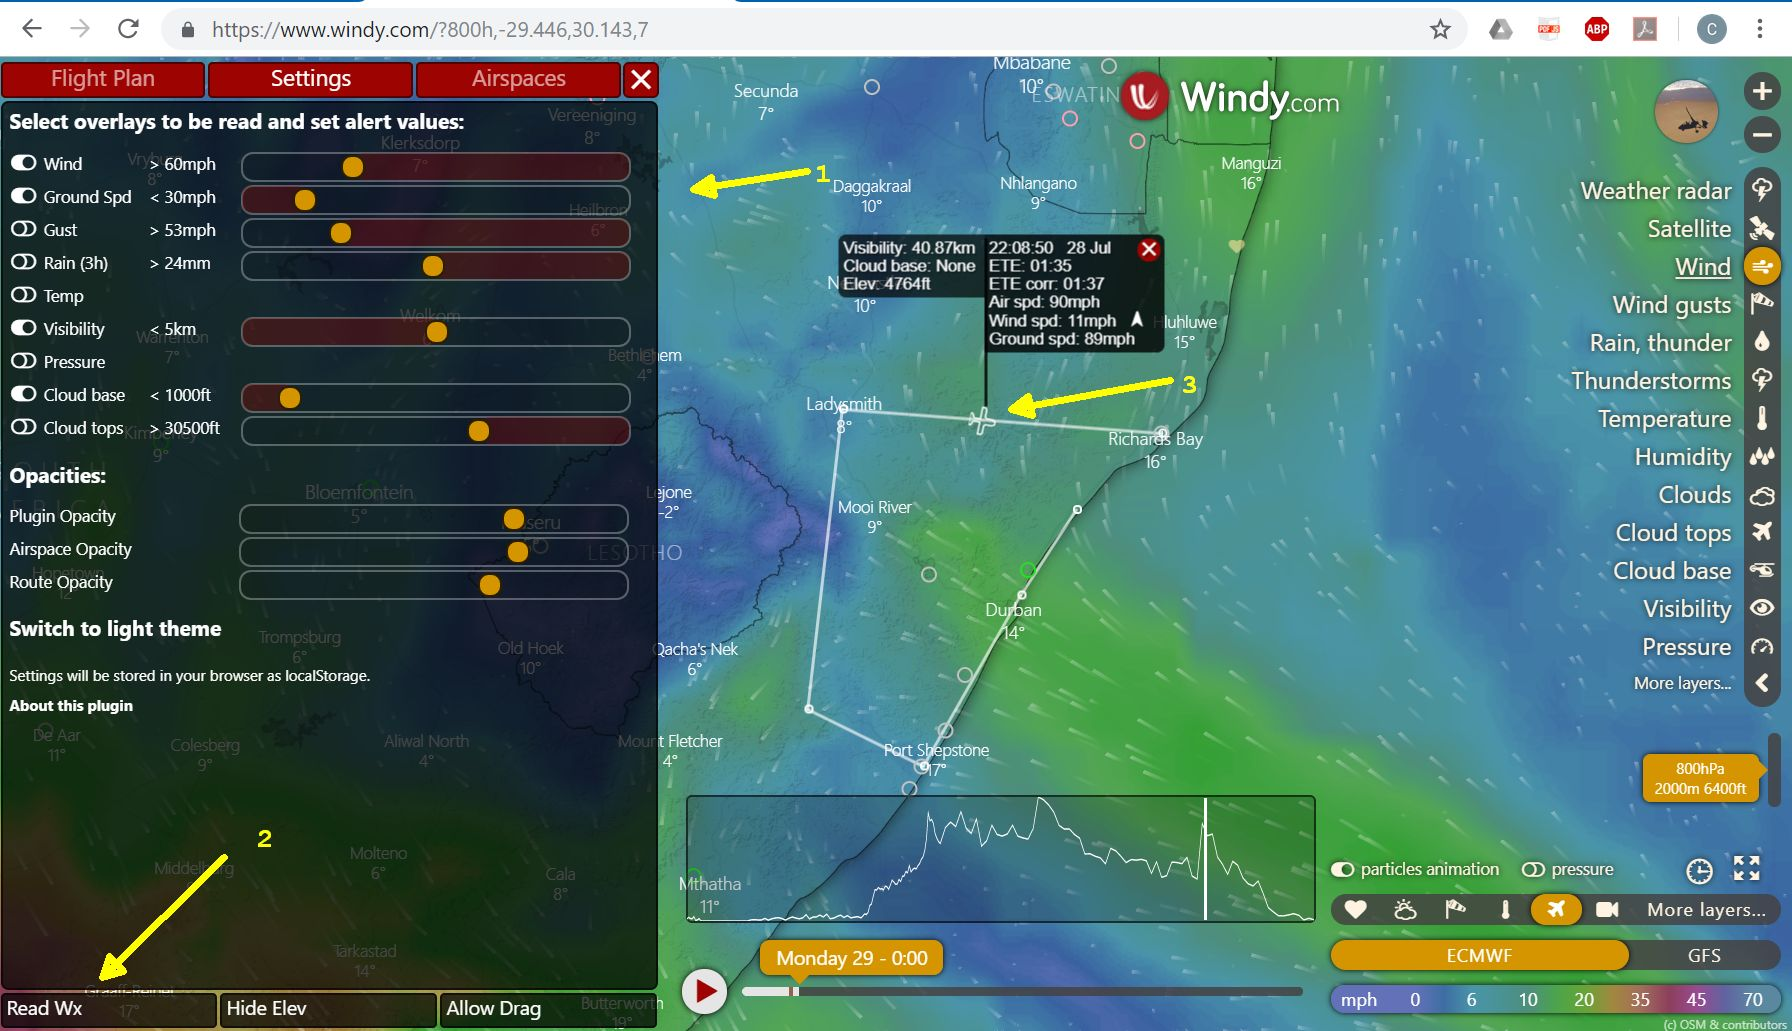 Flight Planner screenshot